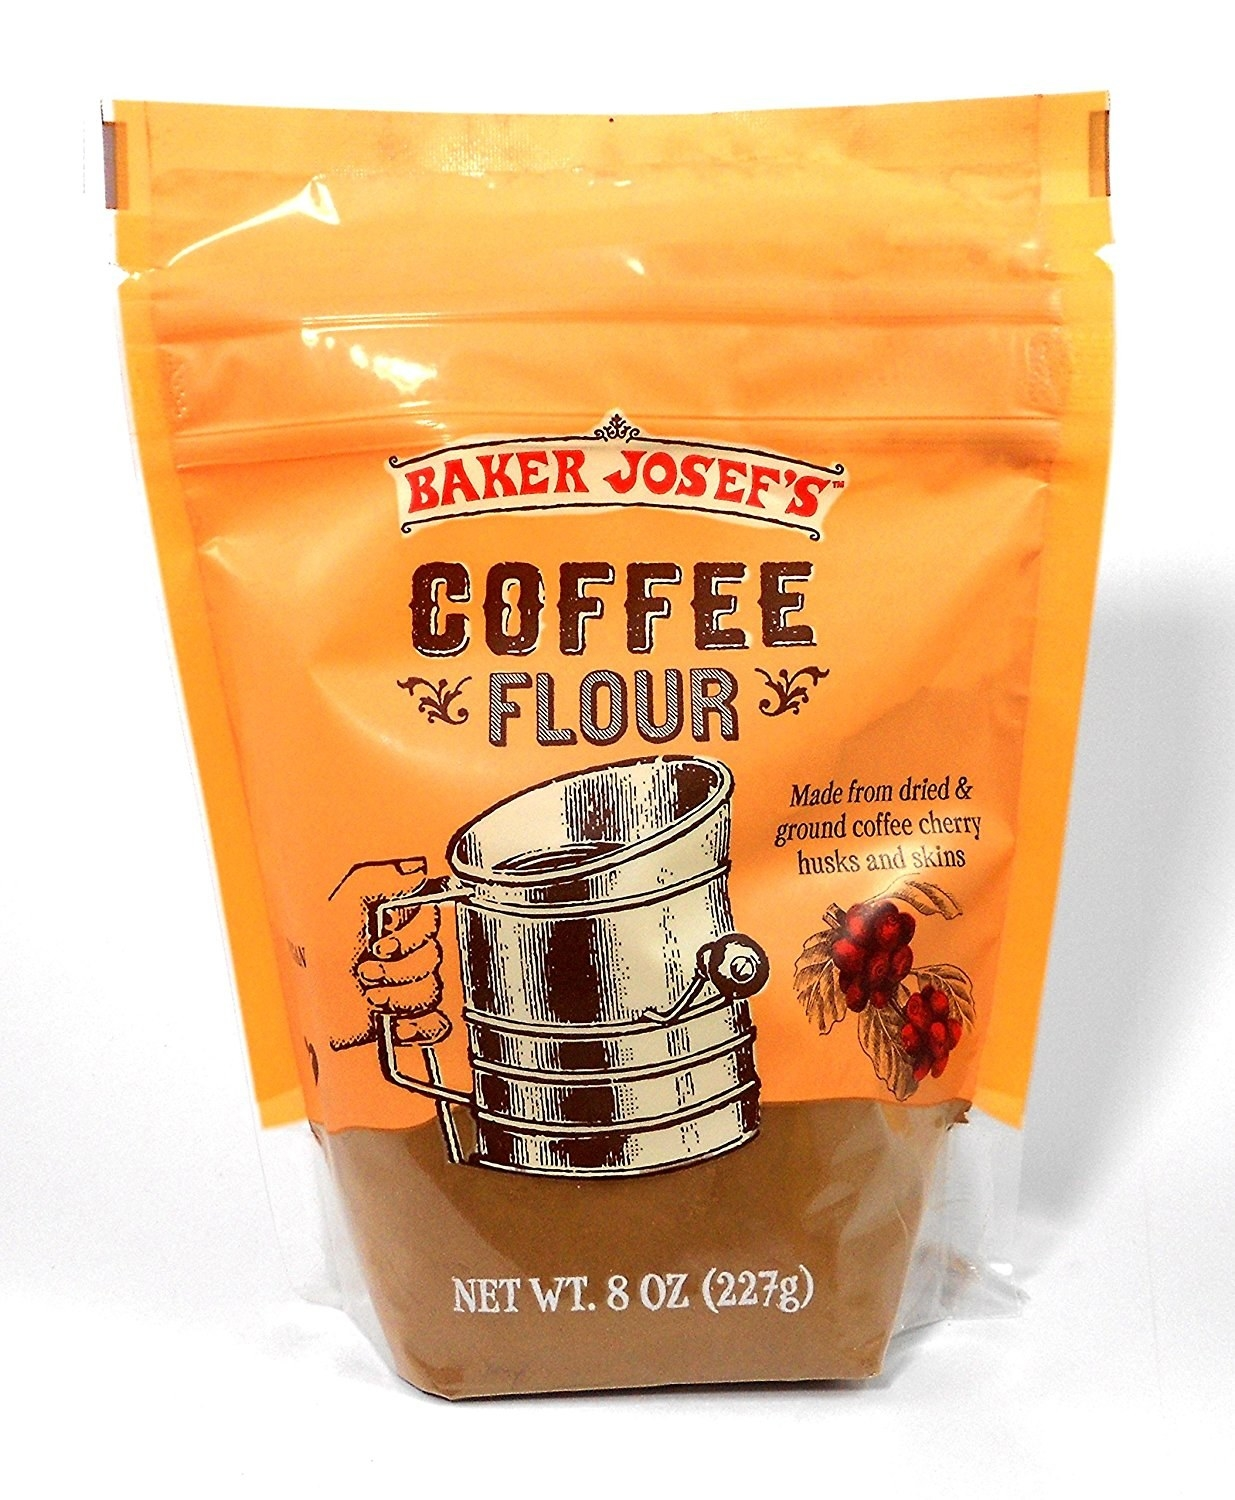 29 Clever Ways To Up Your Coffee Game